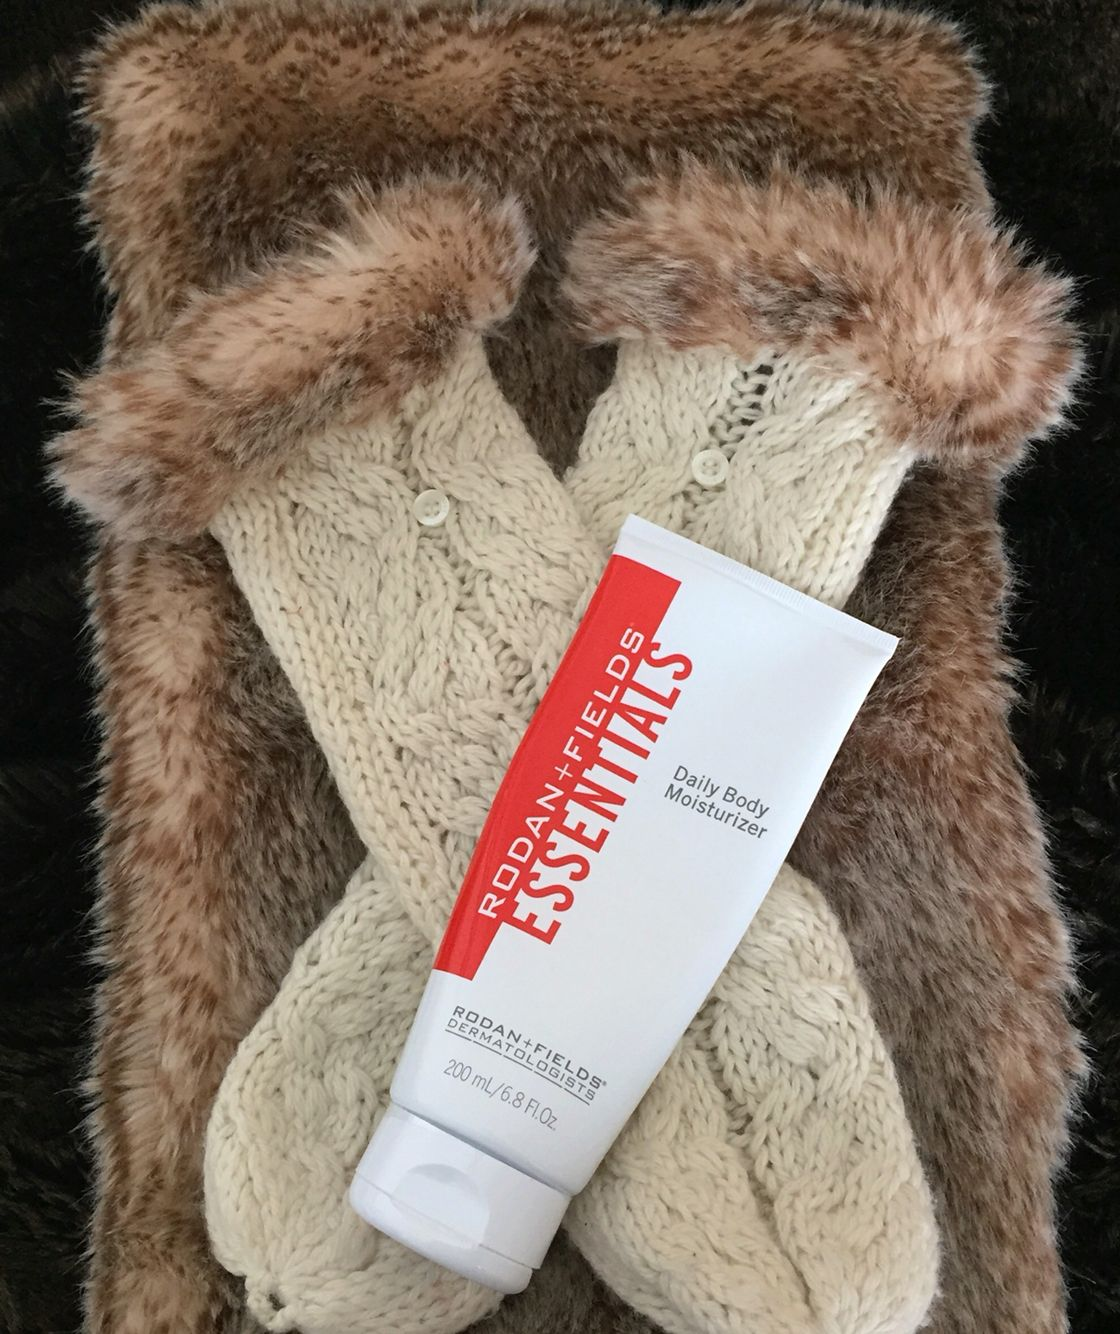 Time to Bundle Up! ❤️ Turns out I left my insulated, waterproof gloves in Delaware -- whoops! So glad I have my moisturizer, since dry skin makes cold weather feel even colder! ❄️ Our formula features RF-Dcell, which is clinically proven to make skin more resilient to the climate-induced stressors (uh -- snow storm!) that cause skin to feel dry, tight and uncomfortable. Perfect for this winter wonderland! #RodanandFields #JanieBainesRandF #snowday #StormJonas #moisturizer #lotion #nongreasy